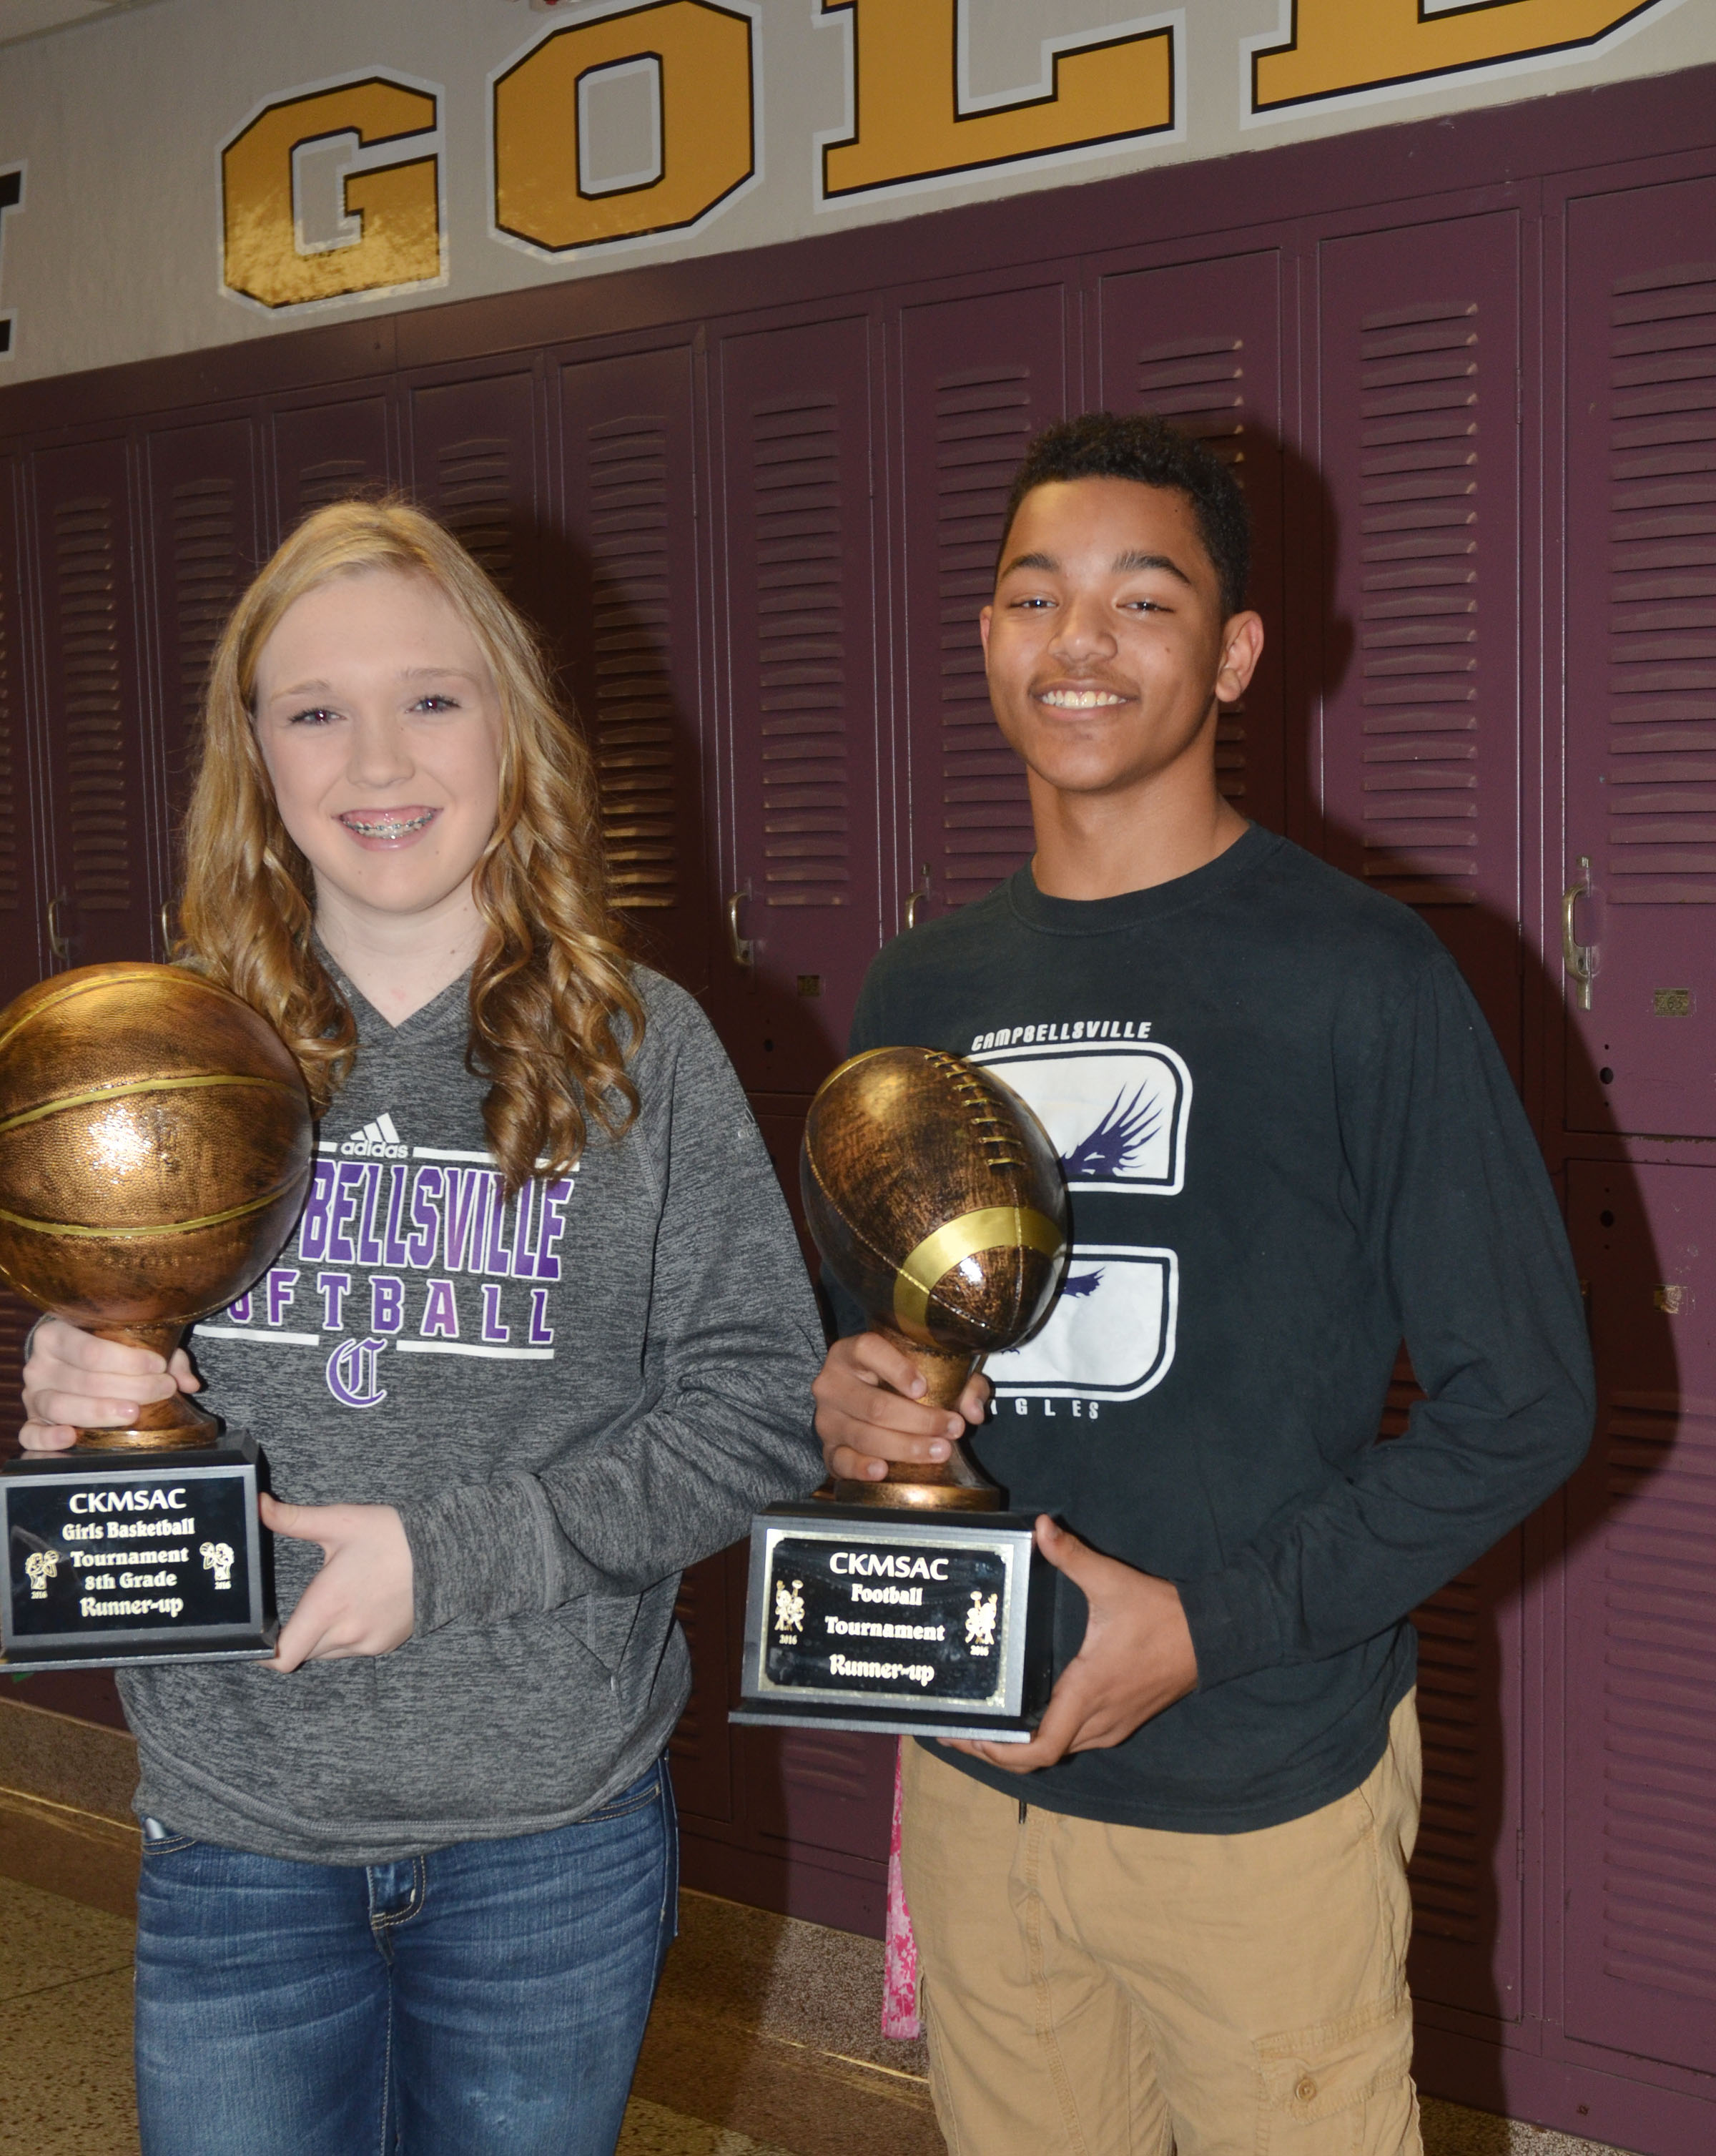 Reggie Thomas and Catlyn Clausen were voted Most Athletic.